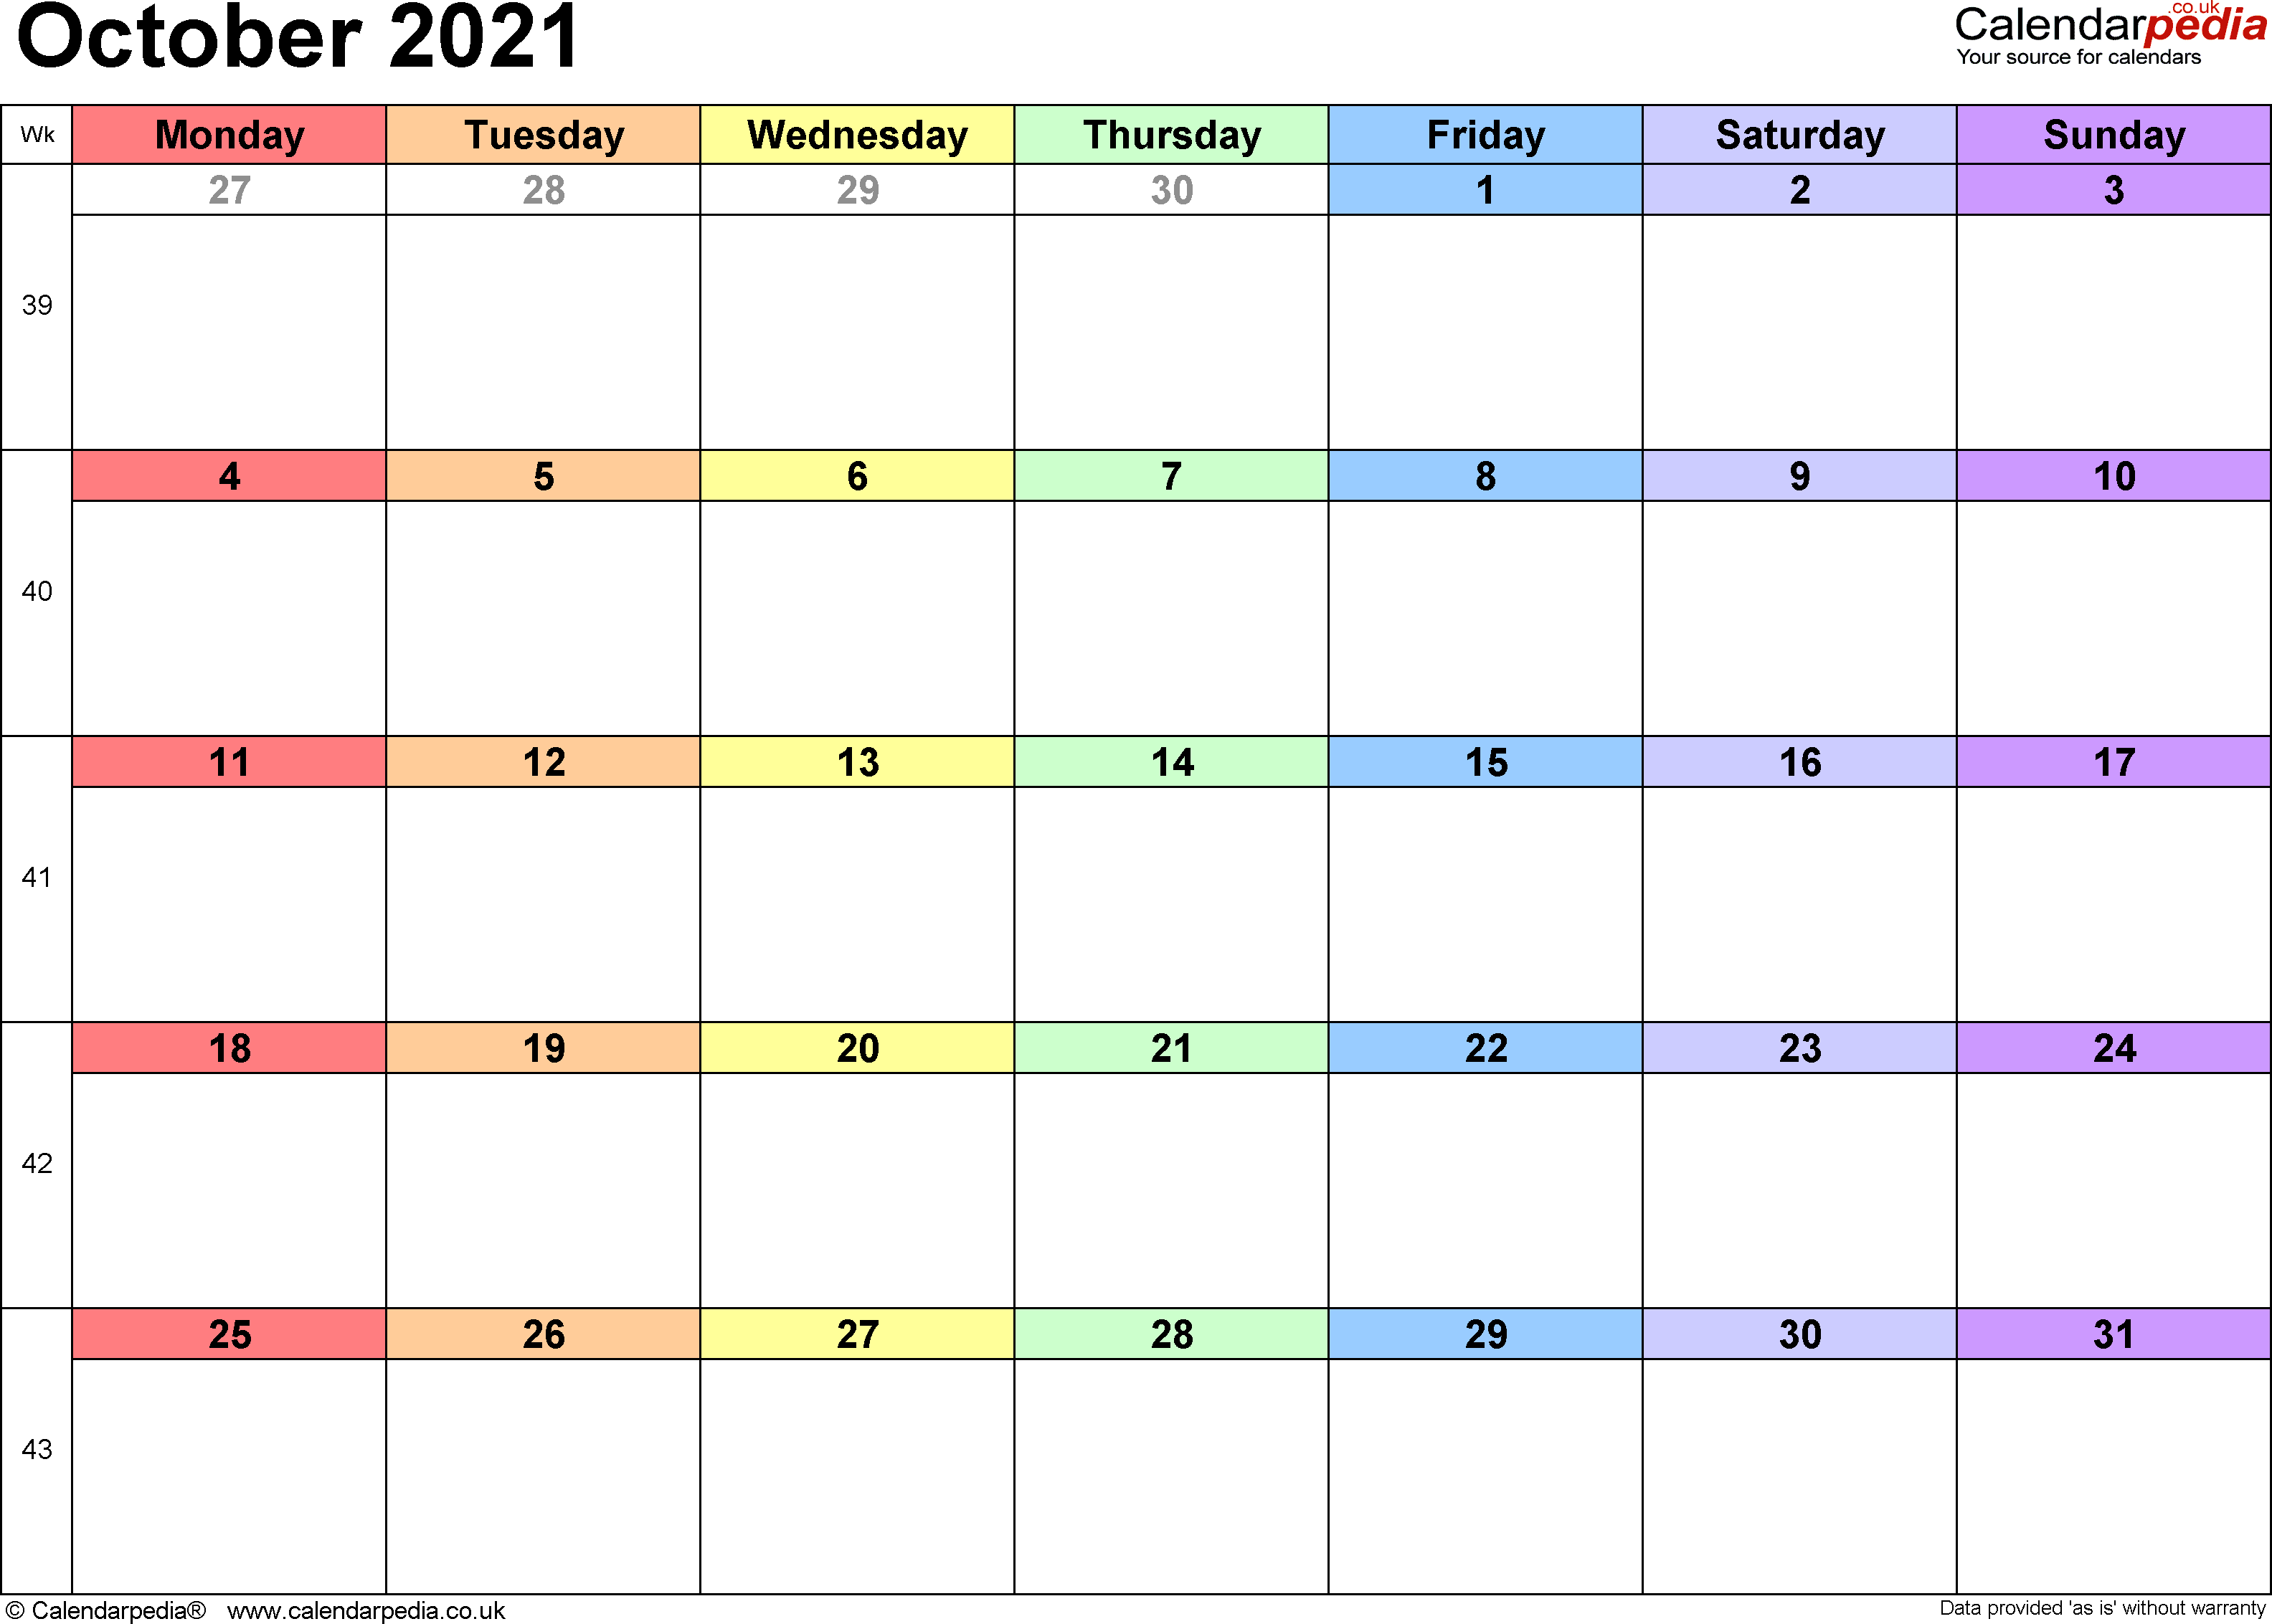 Calendar October 2021, landscape orientation, 1 page, with UK bank holidays and week numbers